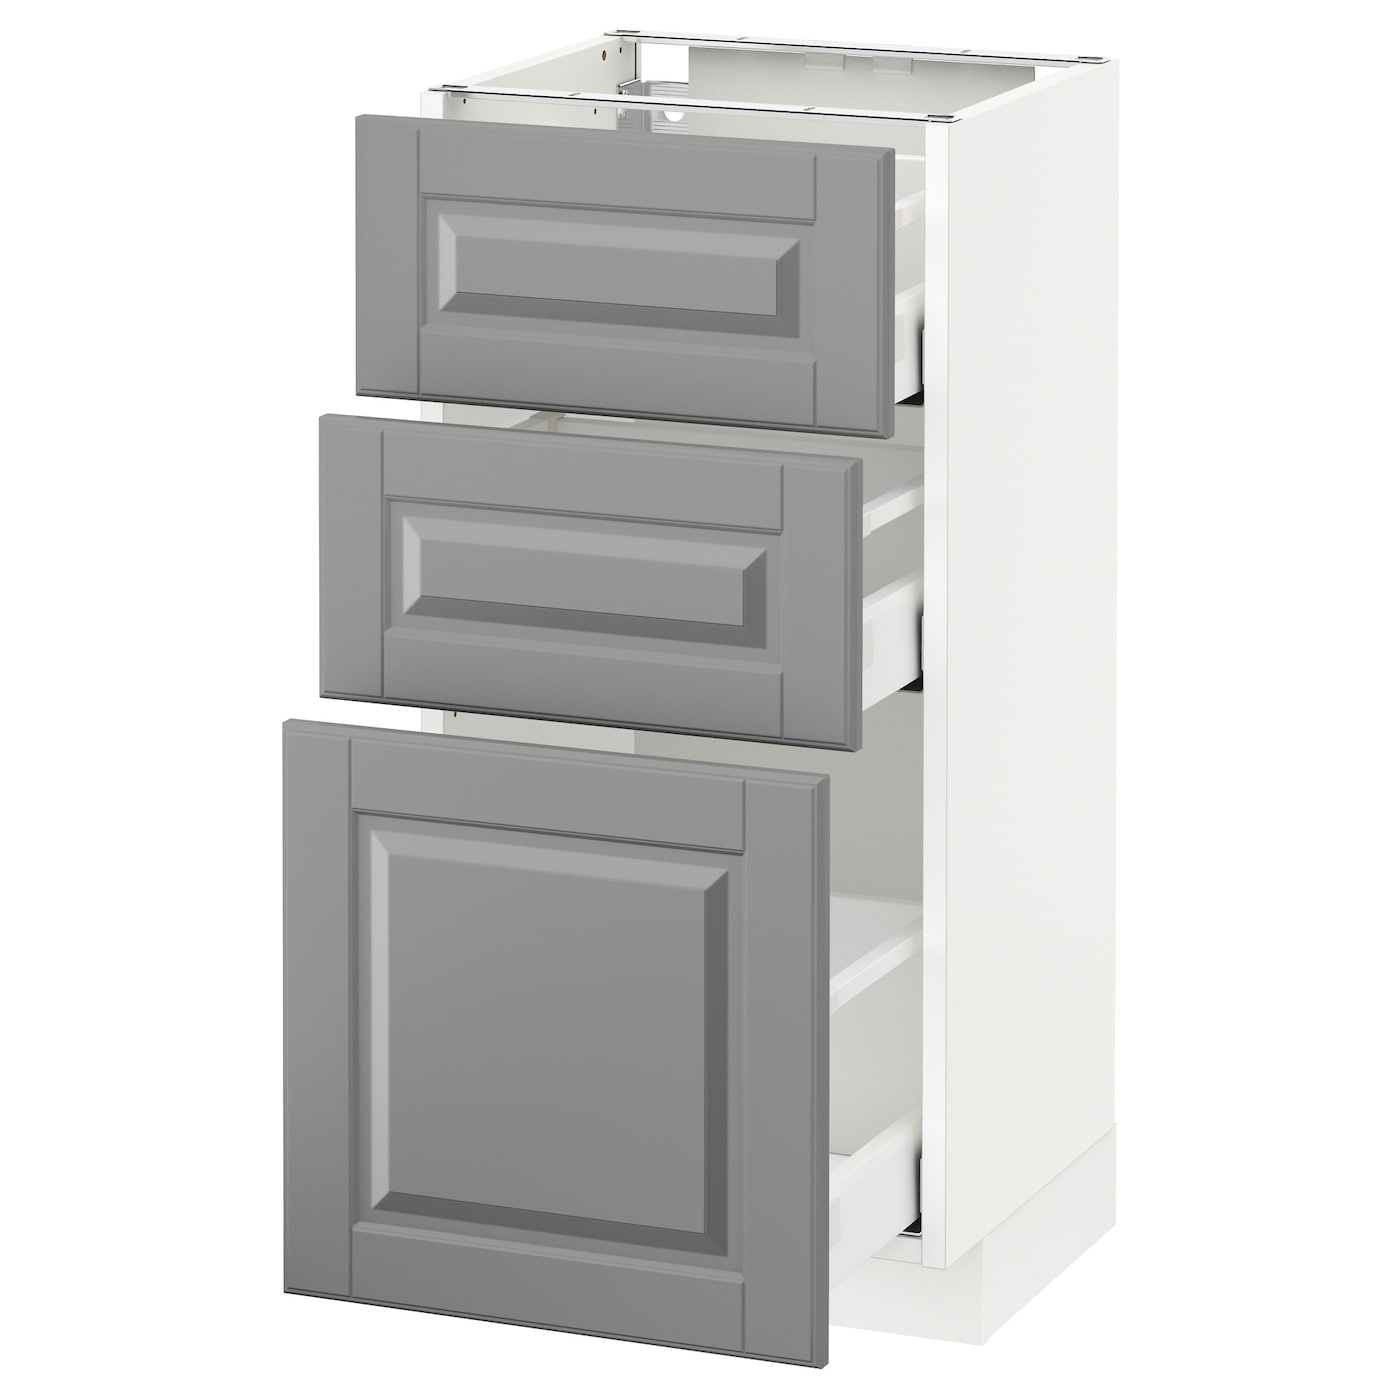 metod maximera base cabinet with 3 drawers white bodbyn grey 40 x 37 cm ikea. Black Bedroom Furniture Sets. Home Design Ideas